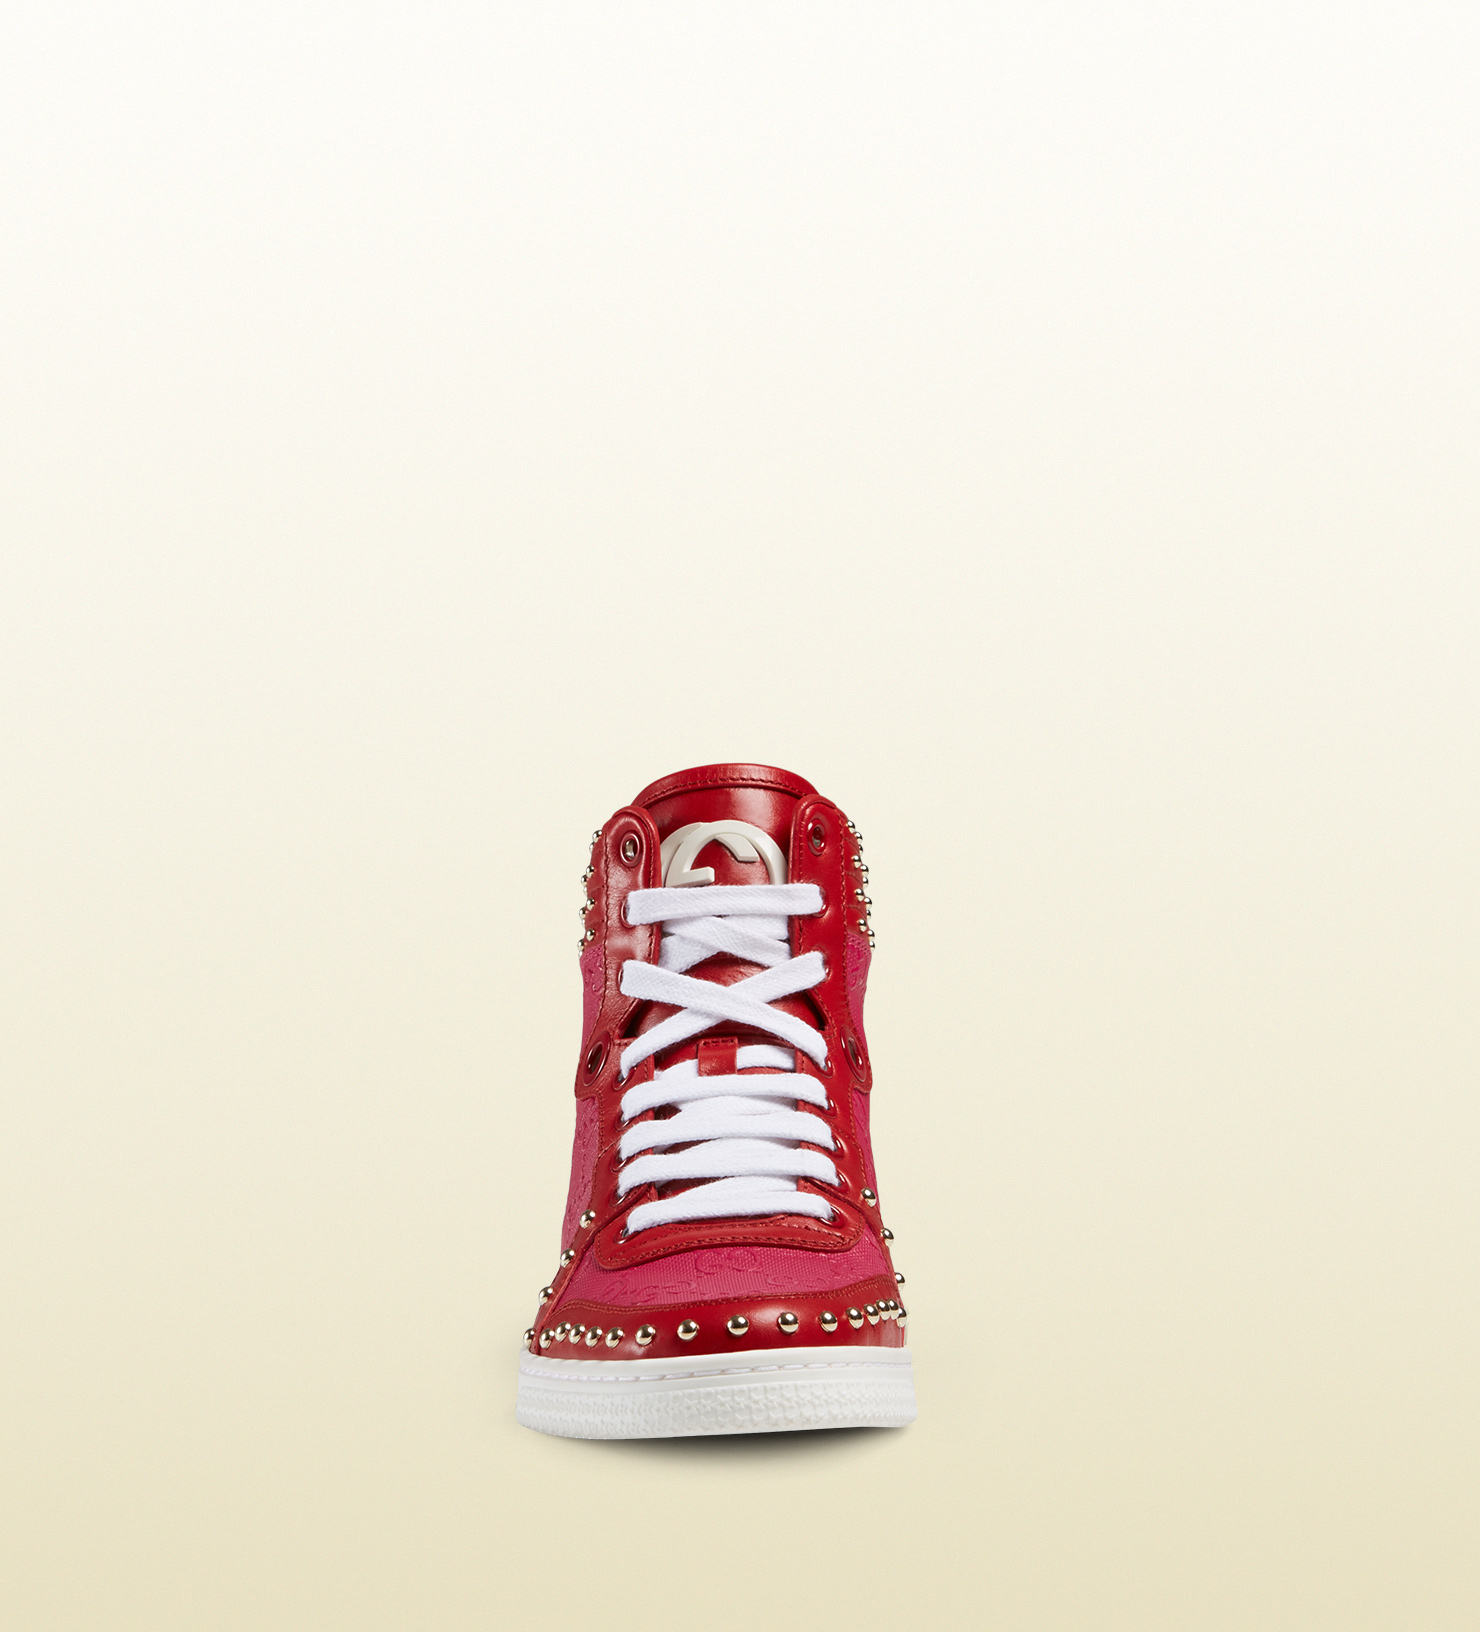 7df5d5de6 Gucci Coda High-top Sneaker in Pink - Lyst